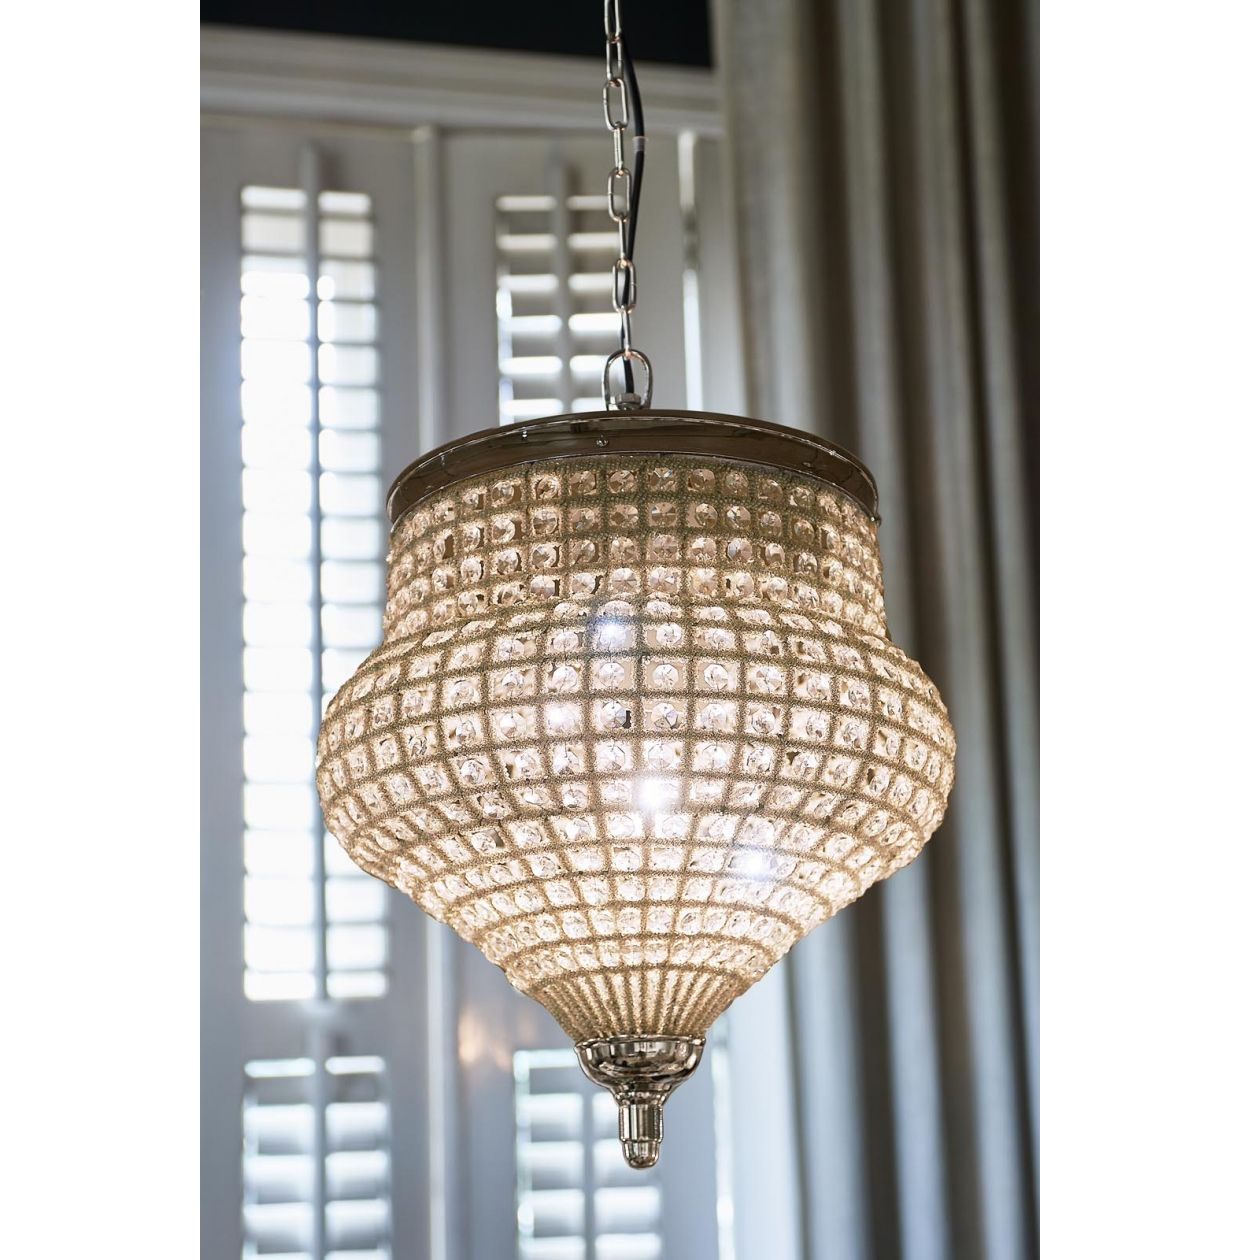 maison lighting. chantilly chandelier marrakech l lamps u0026 lamp shades rivira maison lighting s